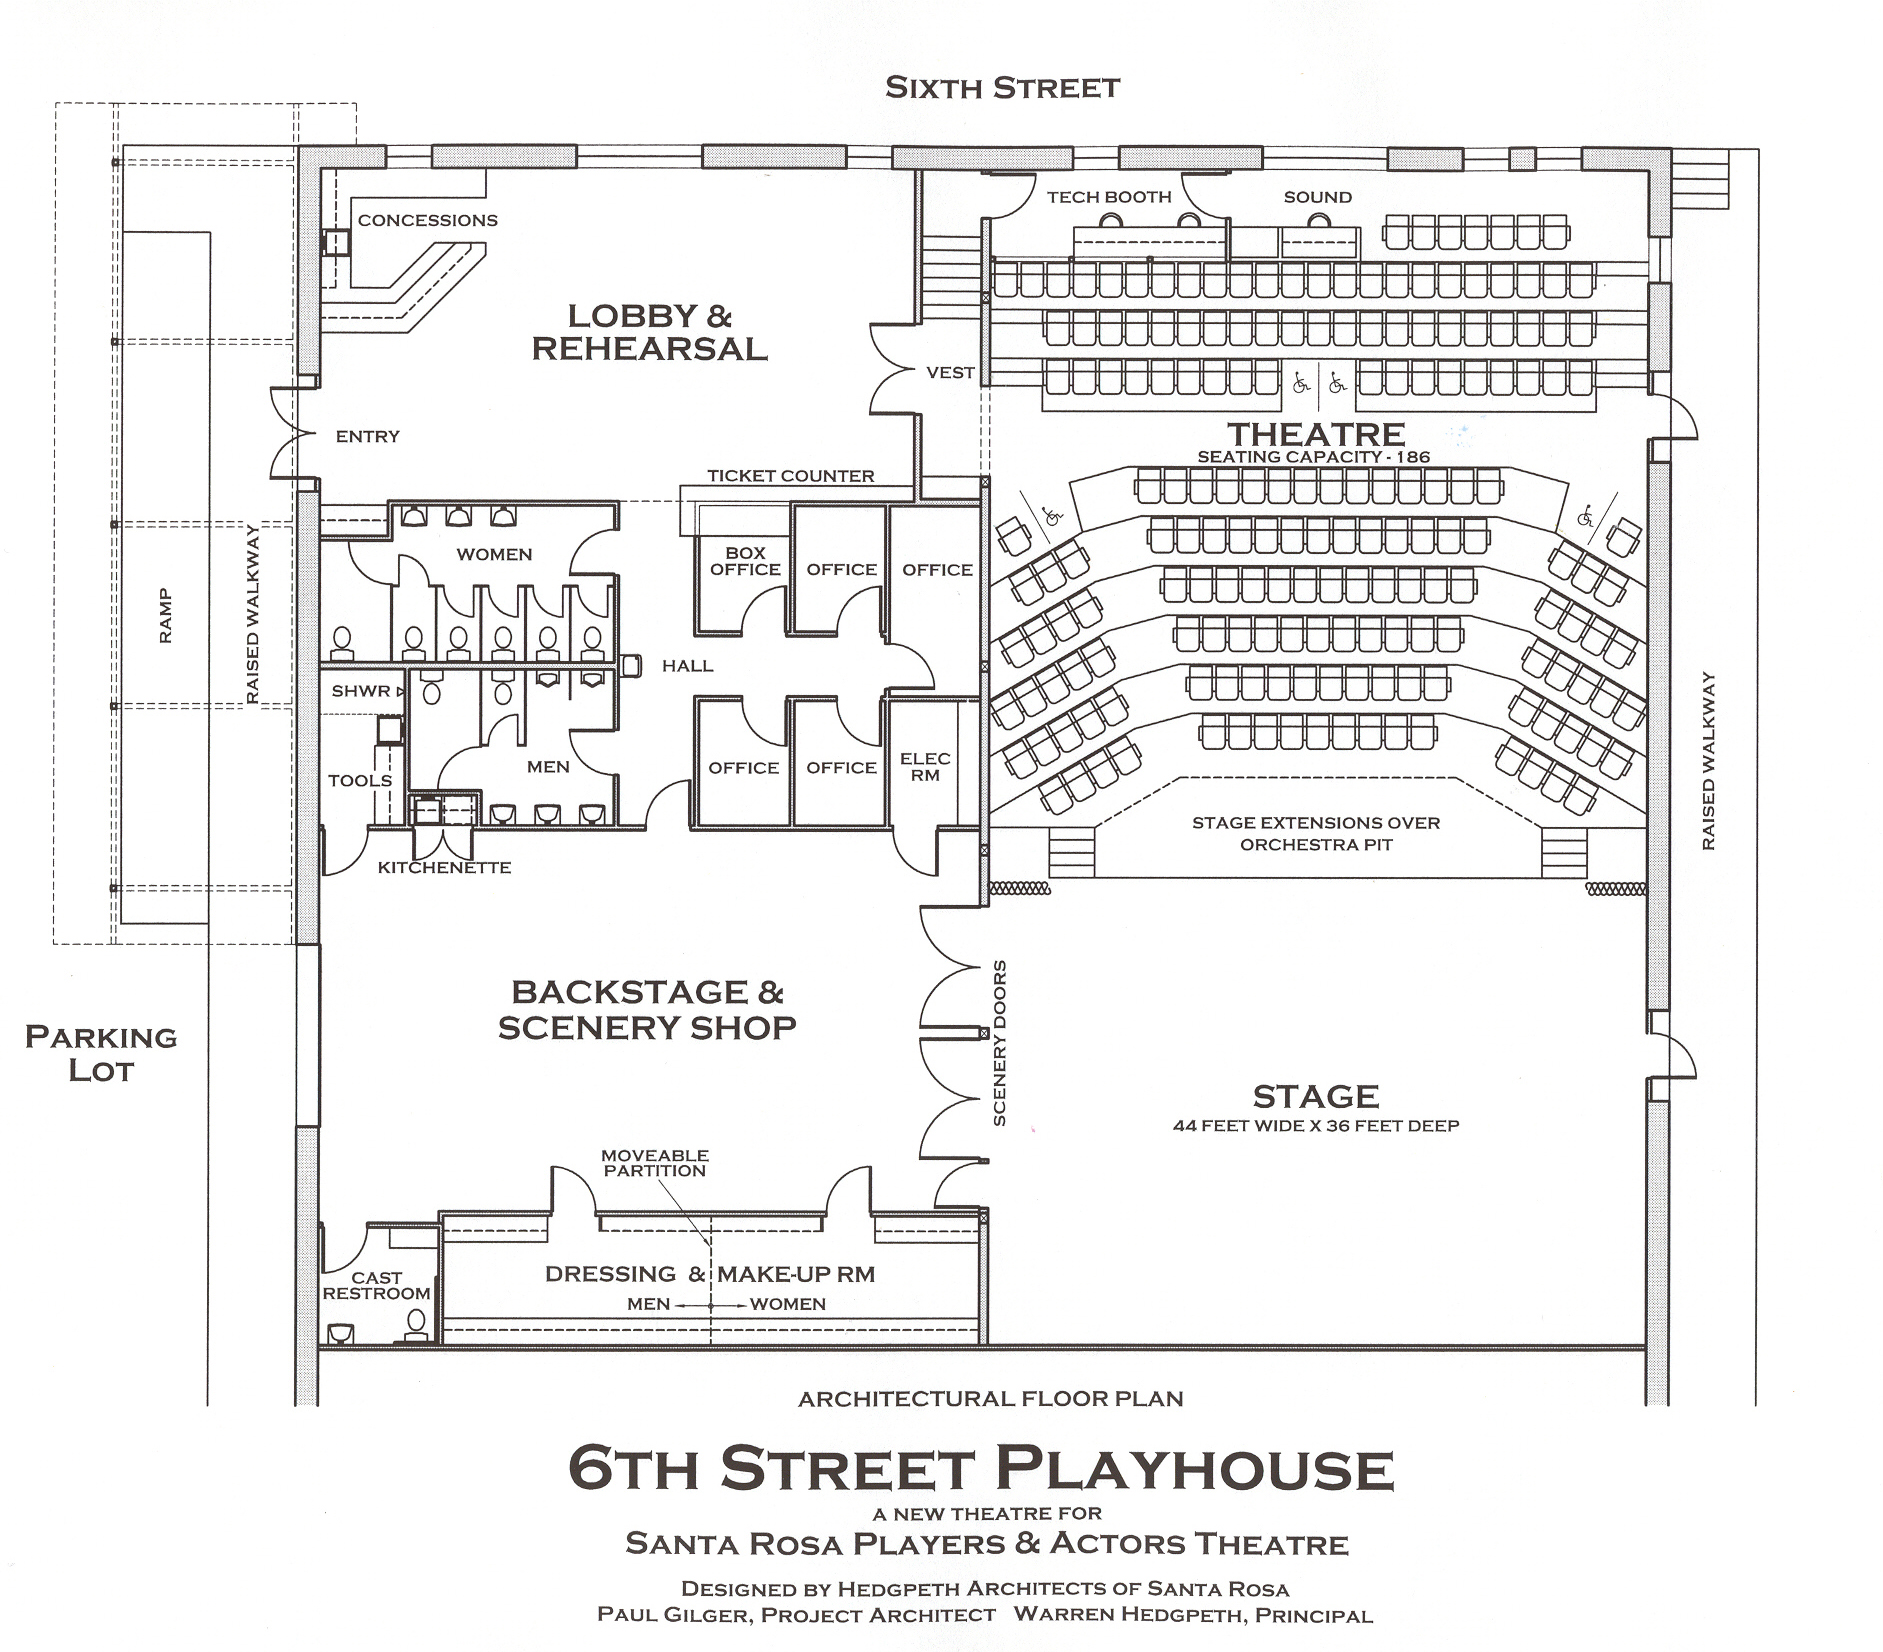 Woodwork Playhouse Seating Plan Melbourne Plans